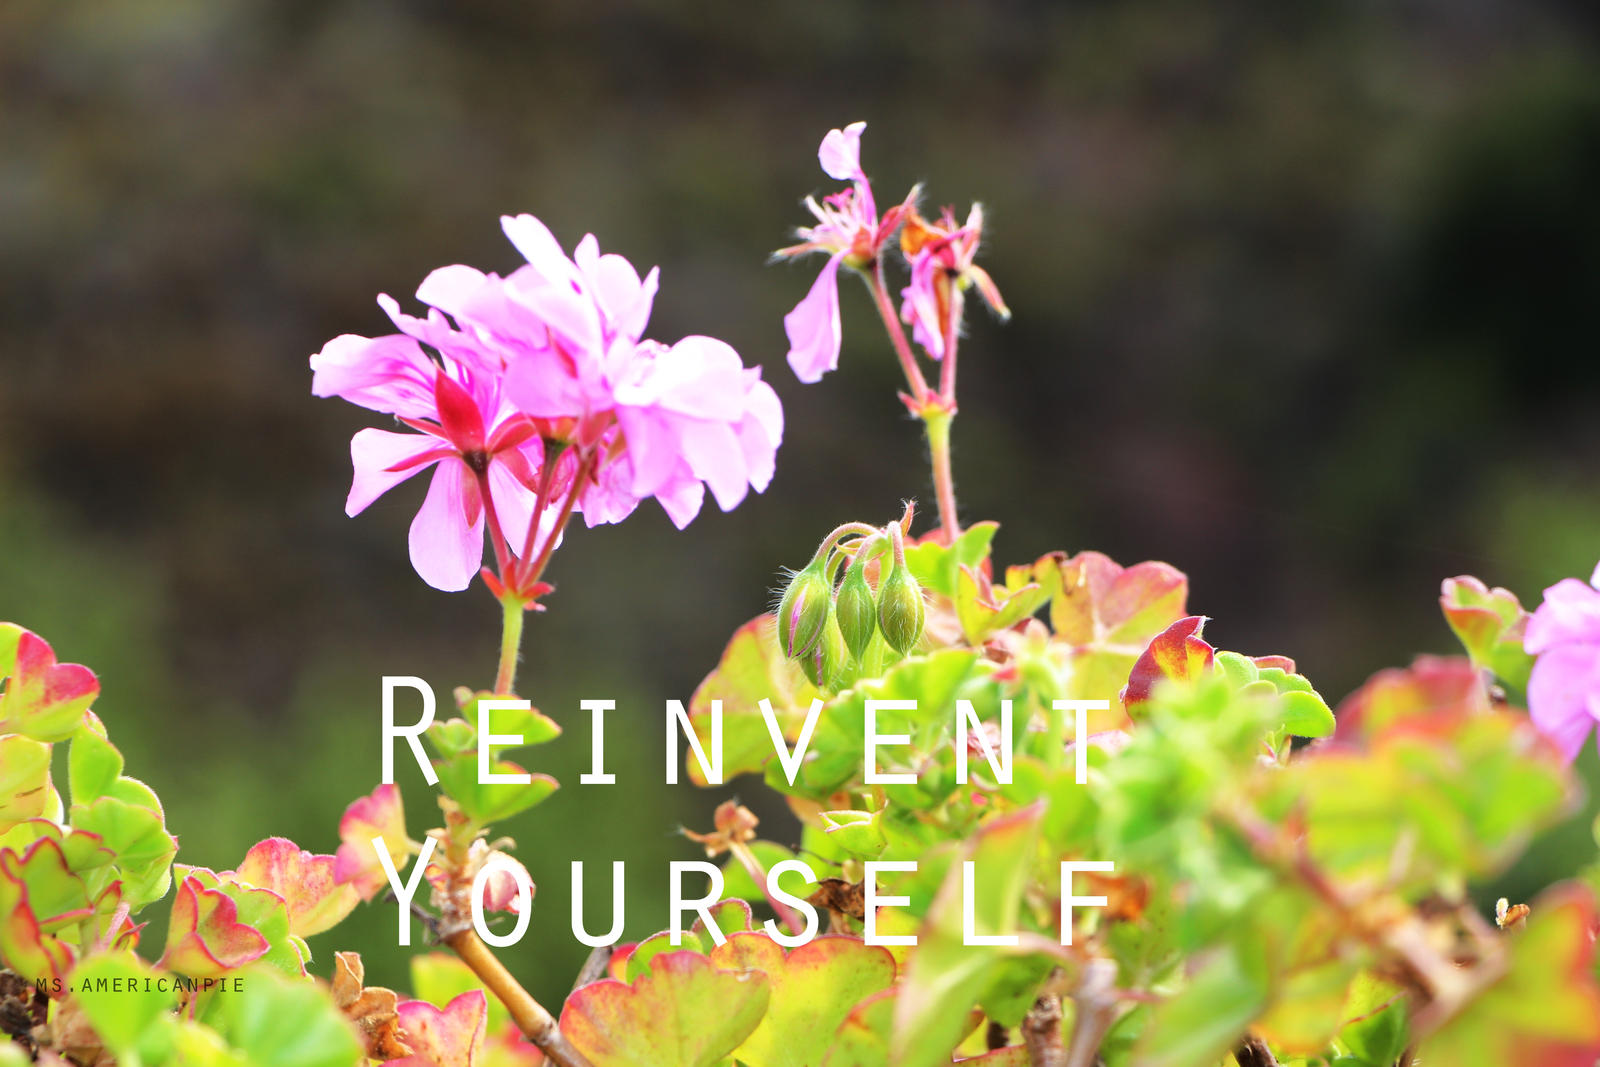 Reinvent Yourself by ms-americanpie